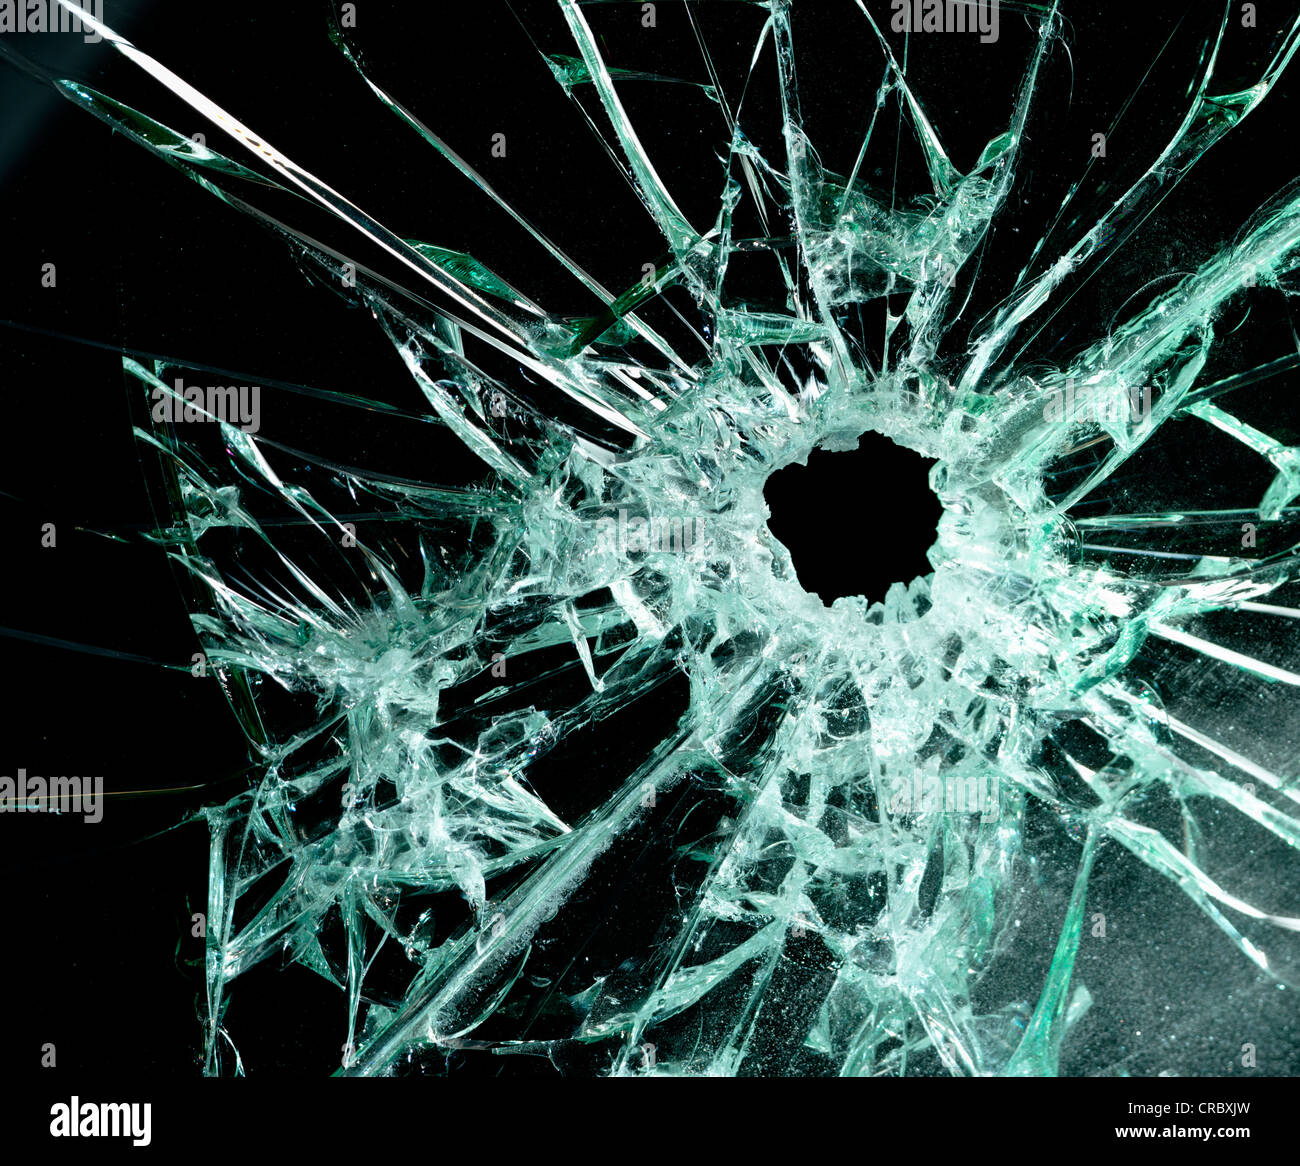 car windscreen with bullet hole in it - Stock Image